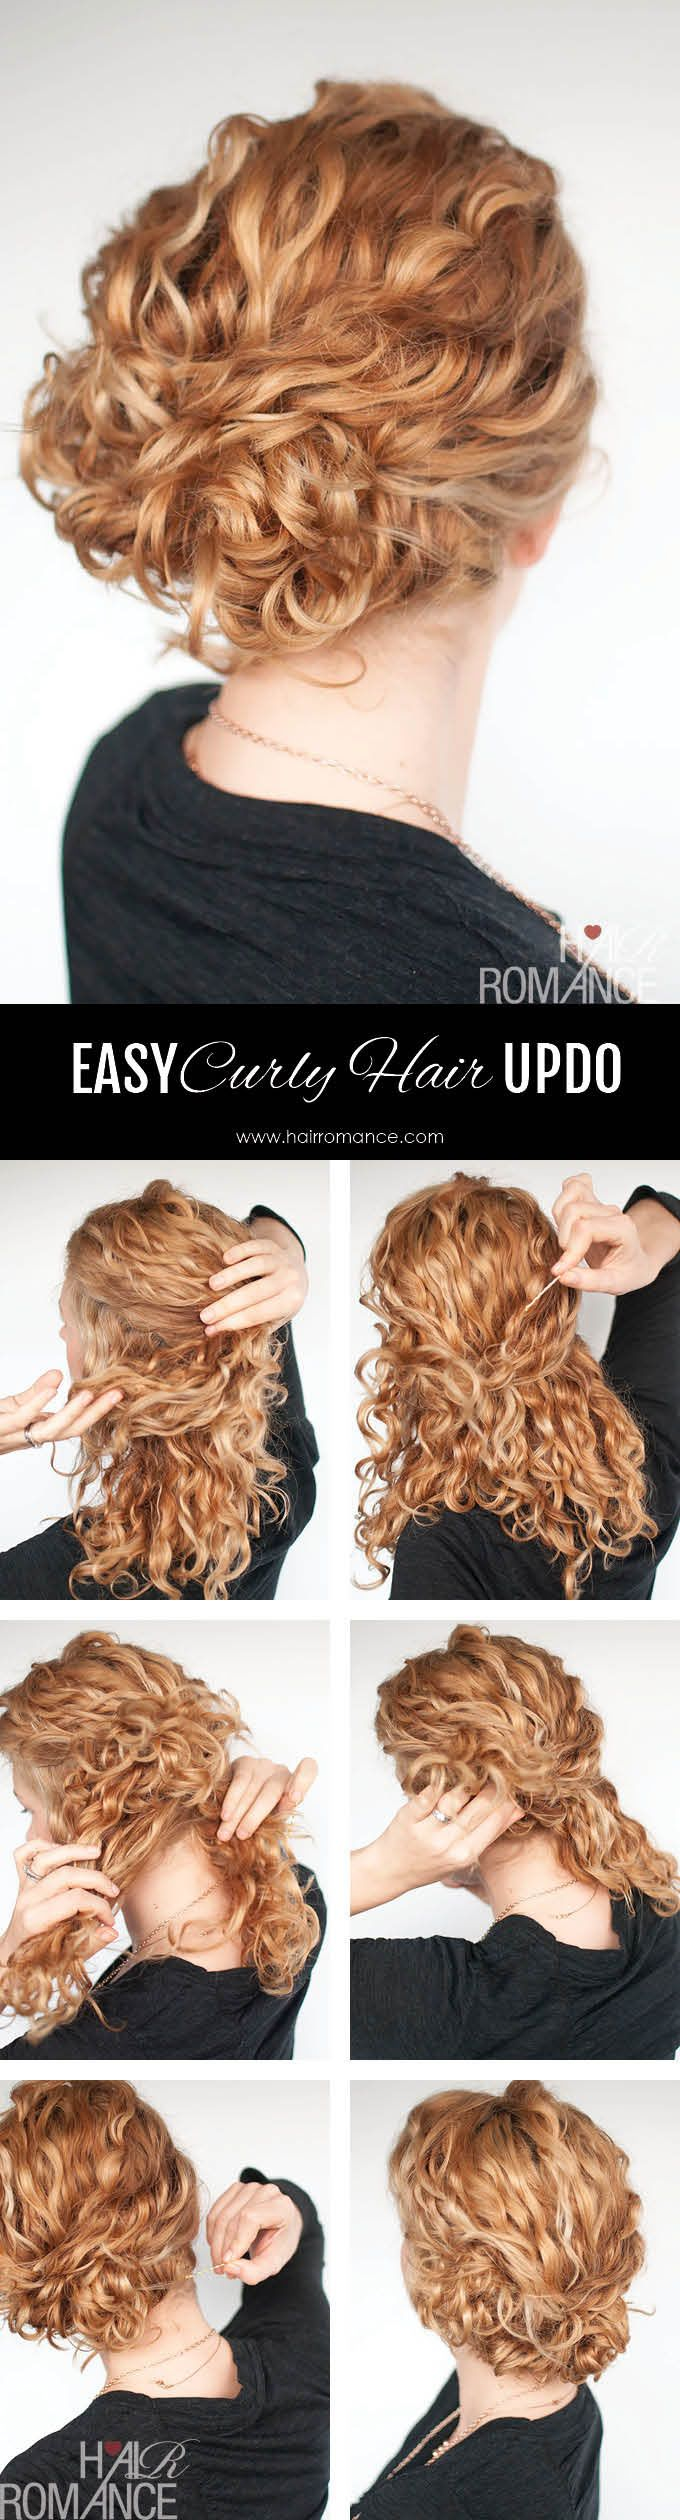 Best 25 curly hair updo ideas on pinterest natural curly hair hair romance curly hair tutorial easy curly updo yesssss this will do fine solutioingenieria Choice Image